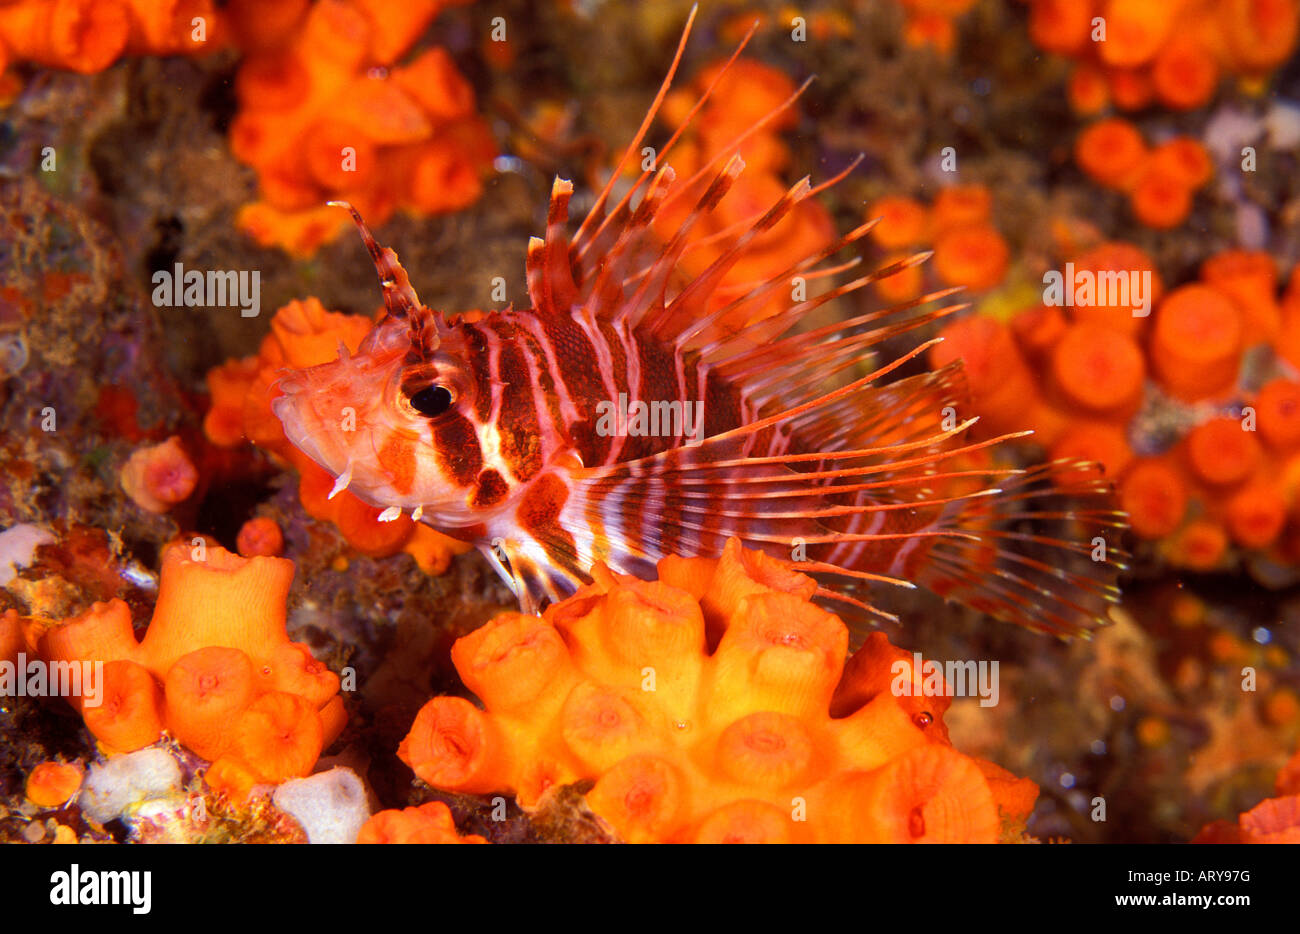 An Hawaiian Lionfish (Pterois sphex) is a colorful yet venomous reef ...